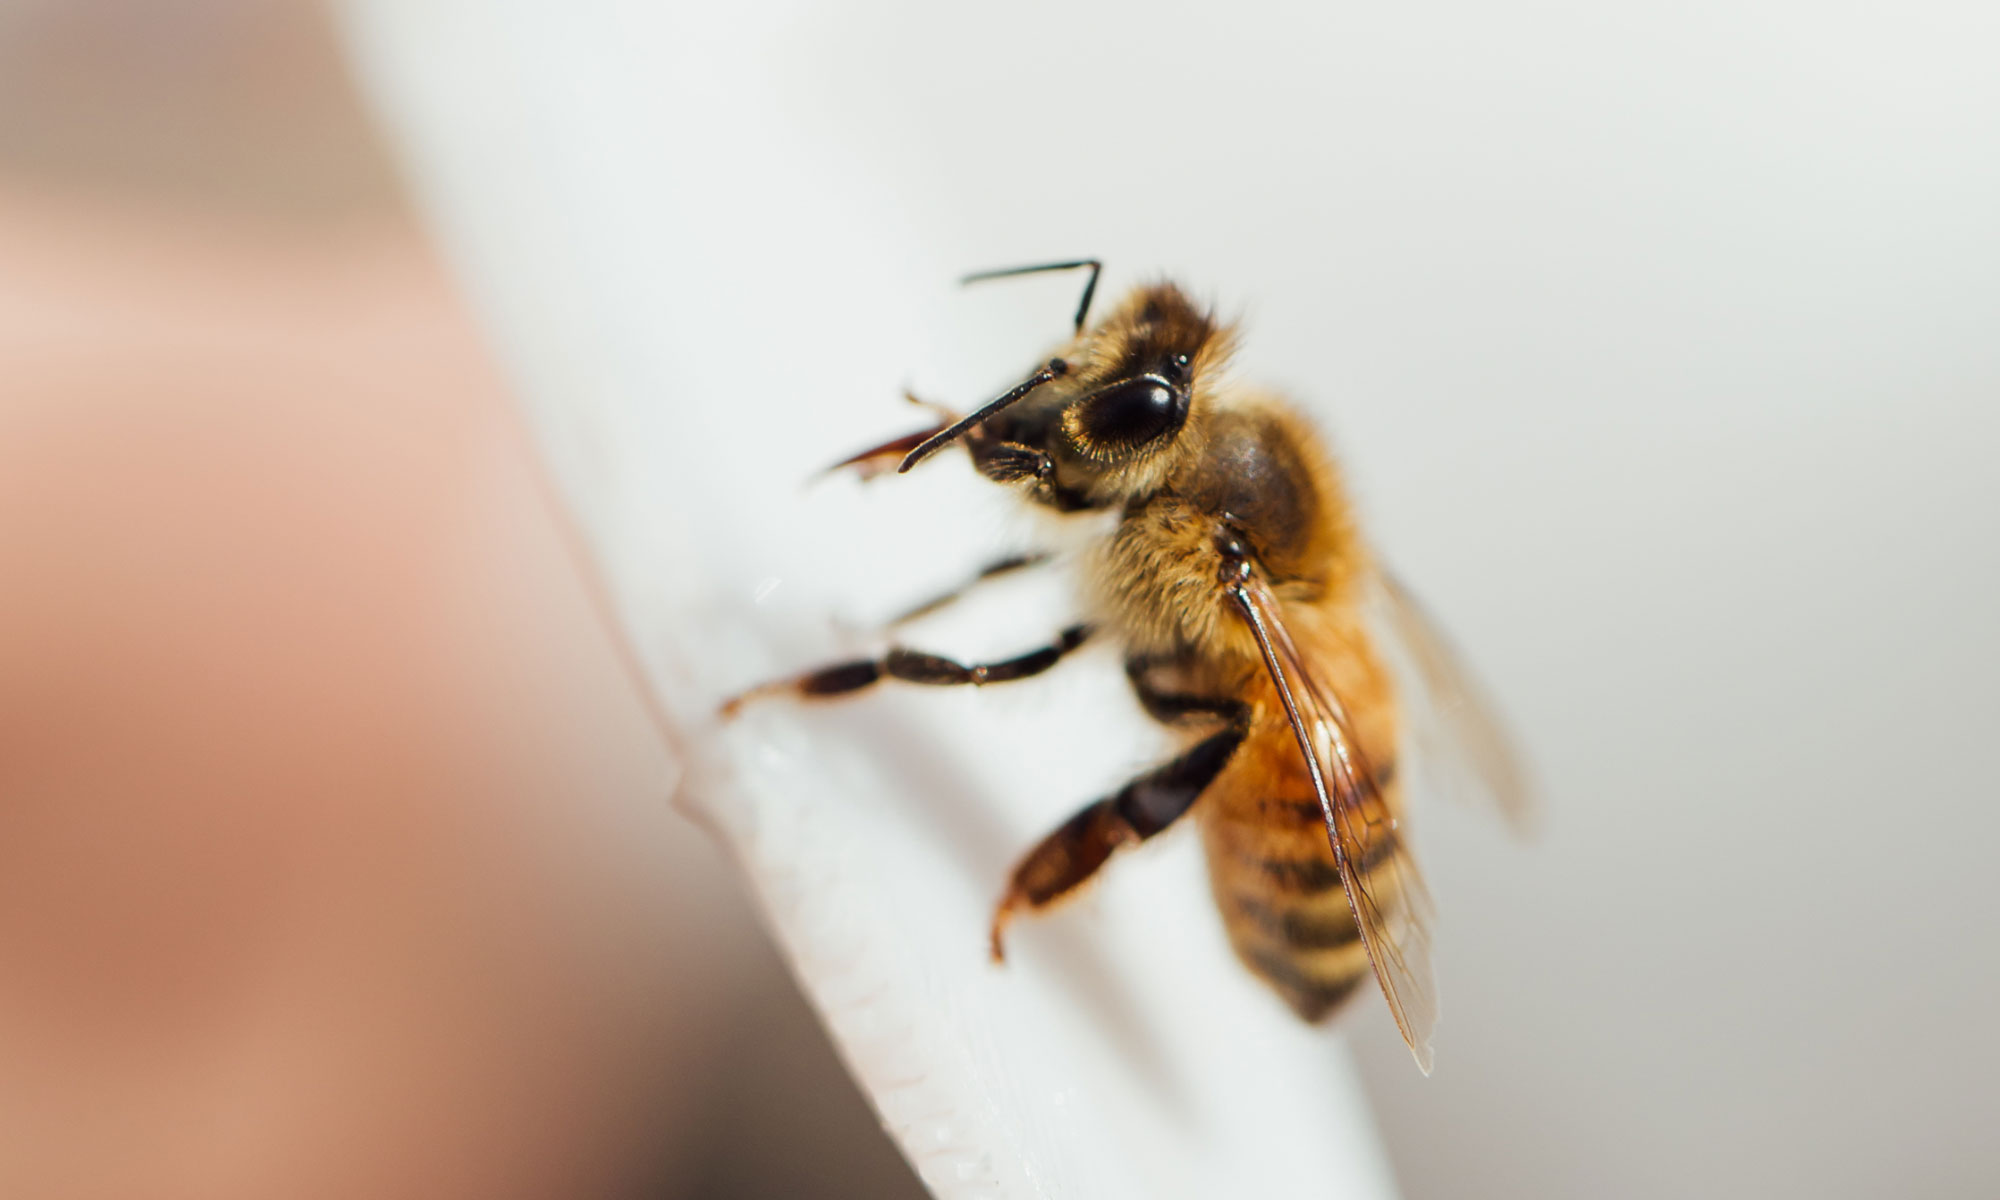 Close up photo of a honeybee